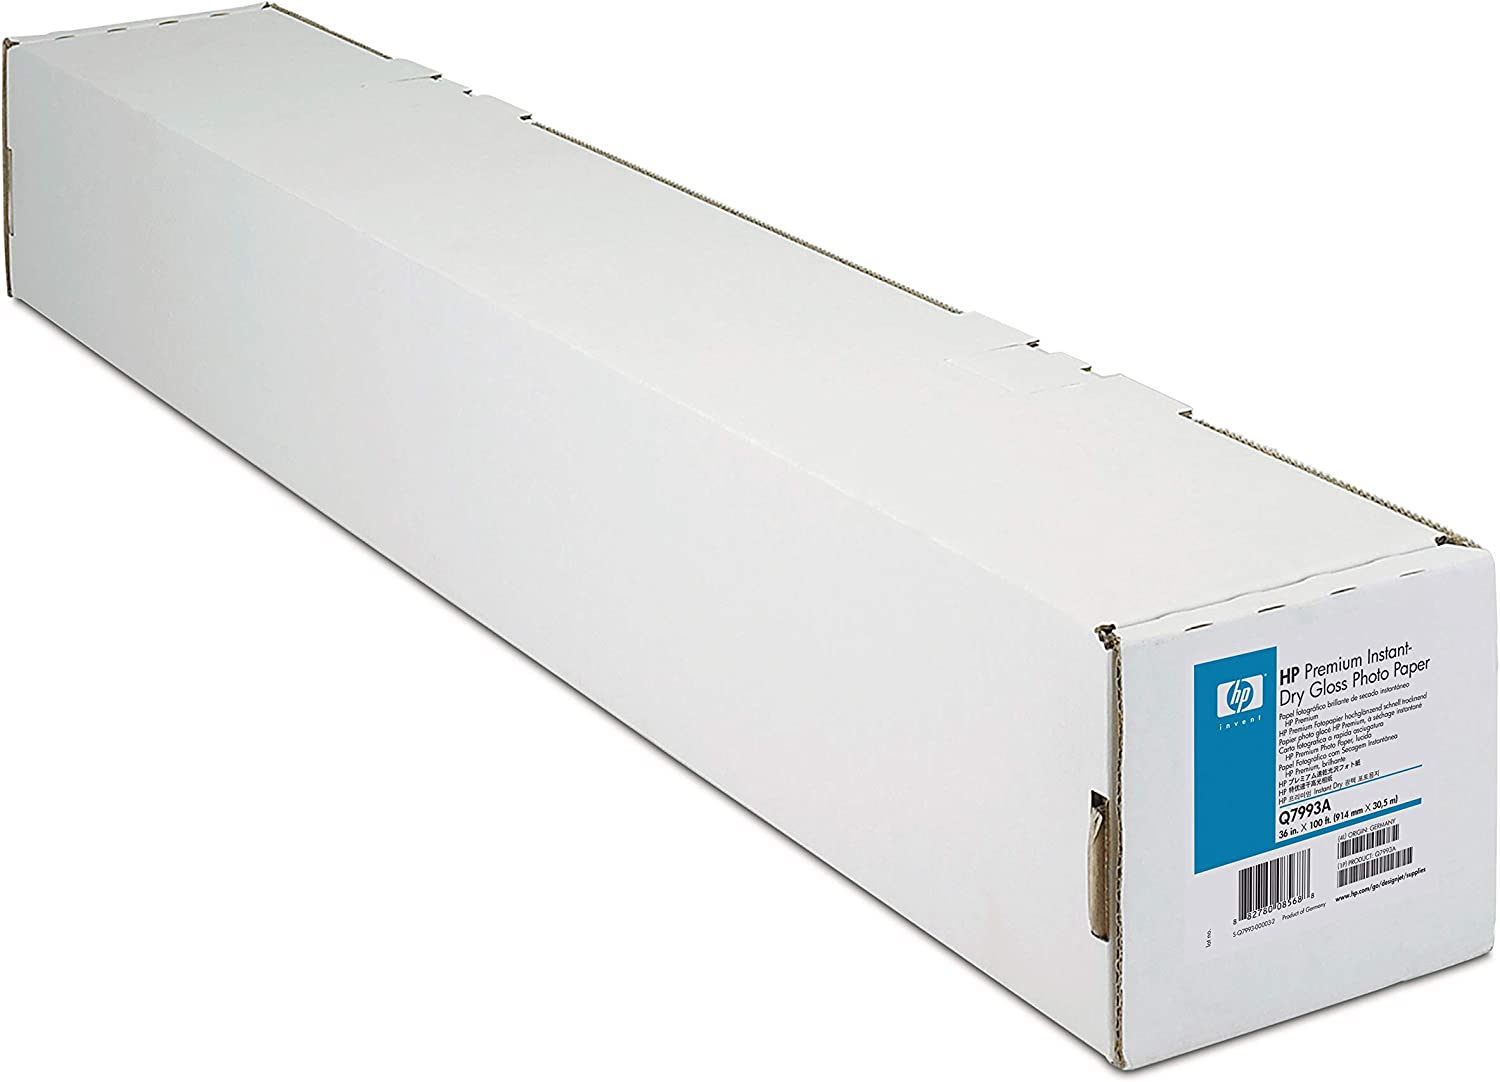 HP Premium Instant-dry Gloss Photo Paper That Inexpensive Is Inches 42 Roll Philadelphia Mall